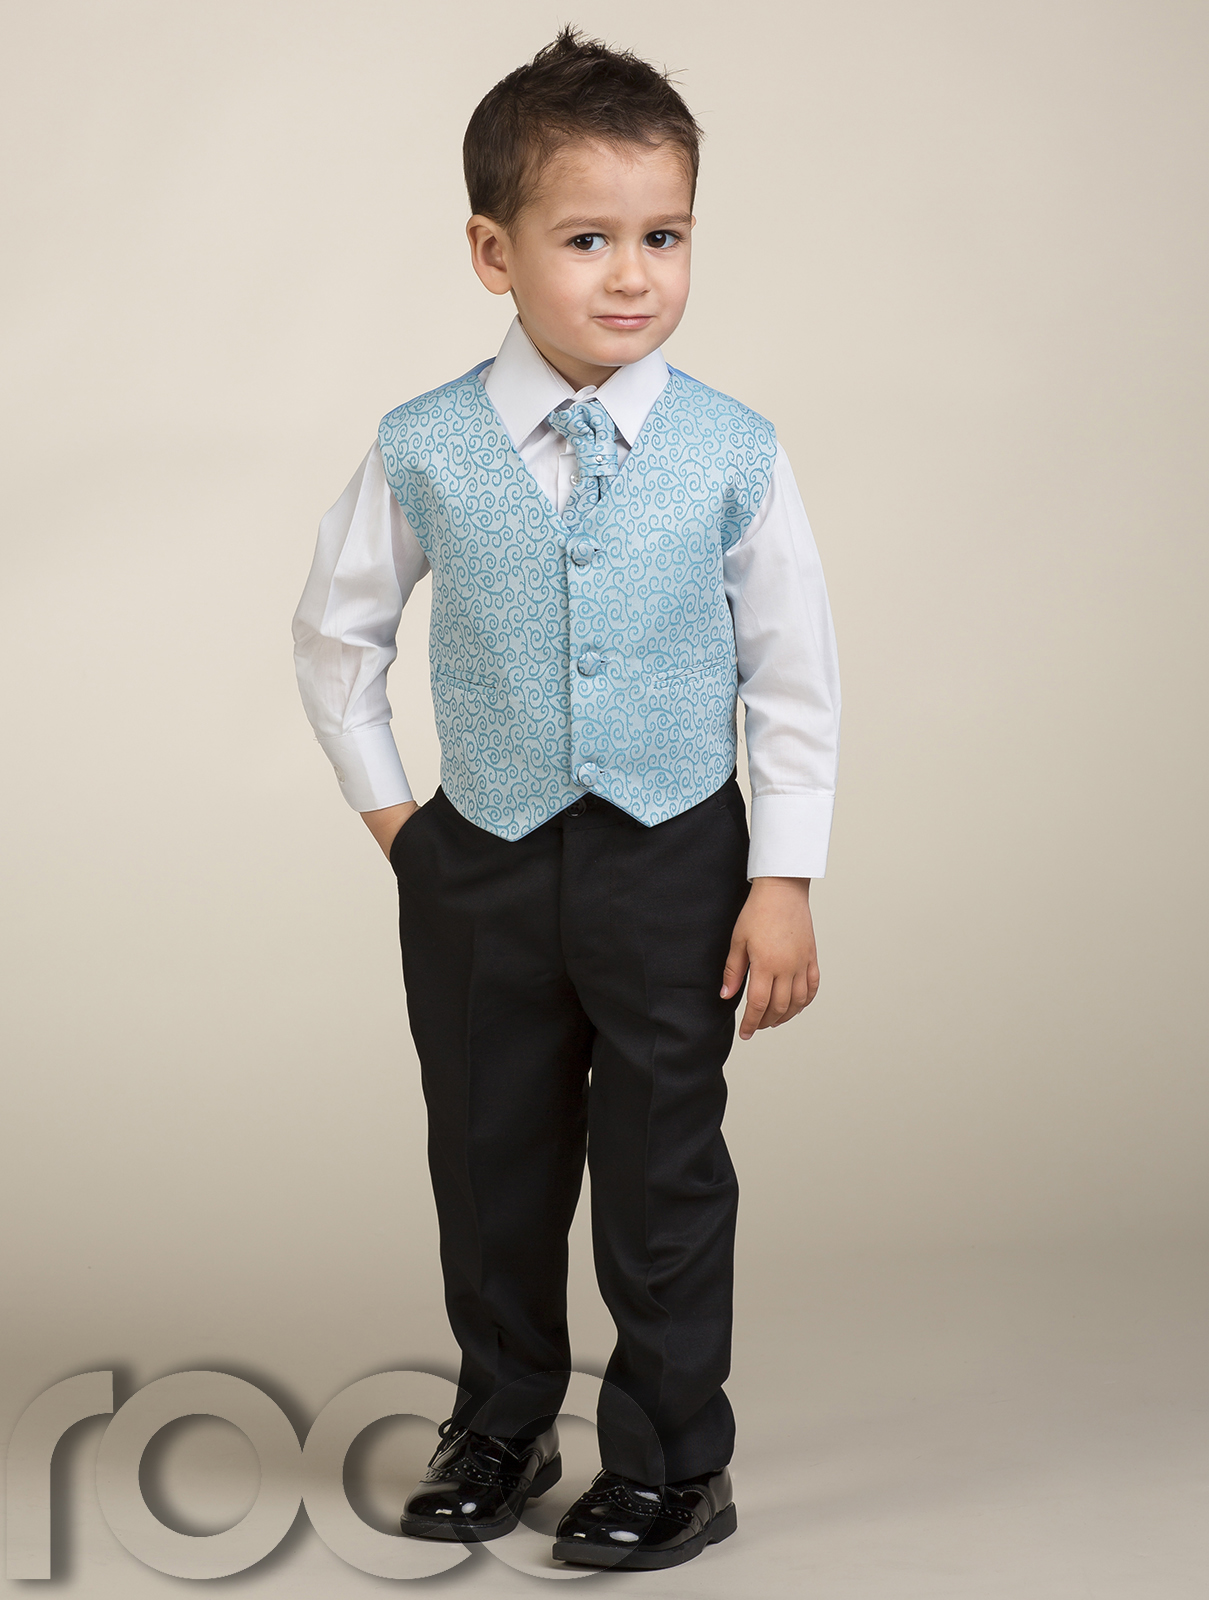 Boys waistcoat suit page boy suits prom suits boys for Boys dress clothes wedding